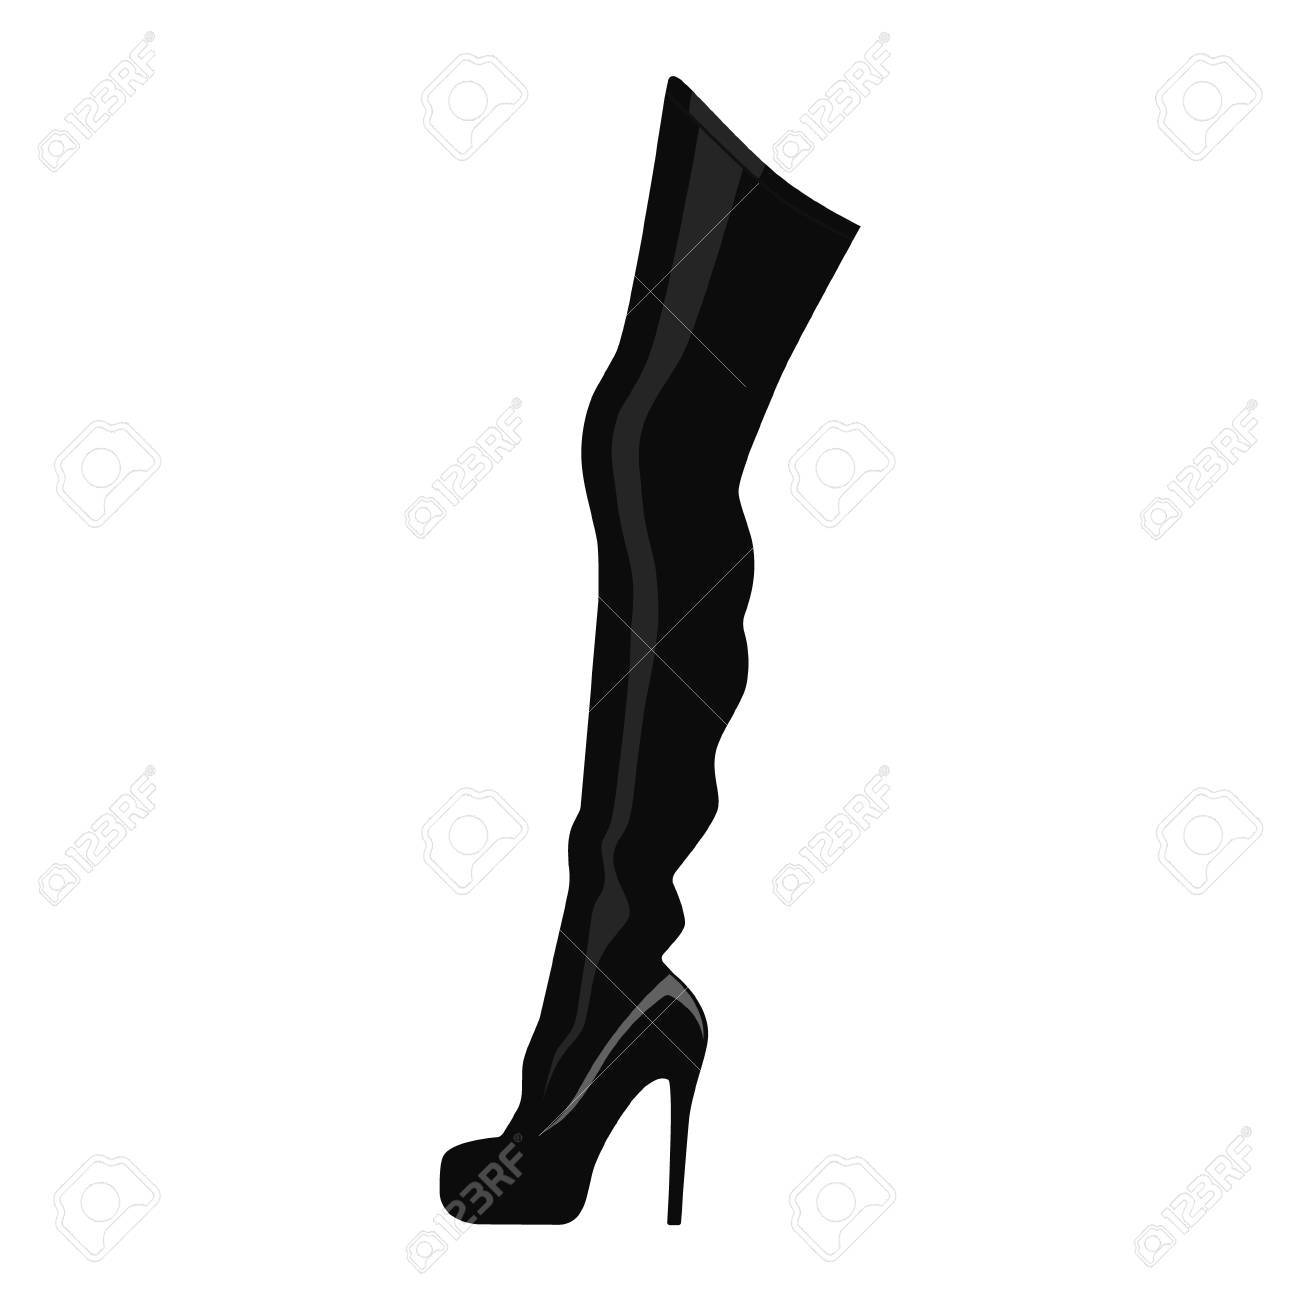 Vector illustration black thigh high boots isolated on white background. Woman fashion boots design - 108774742